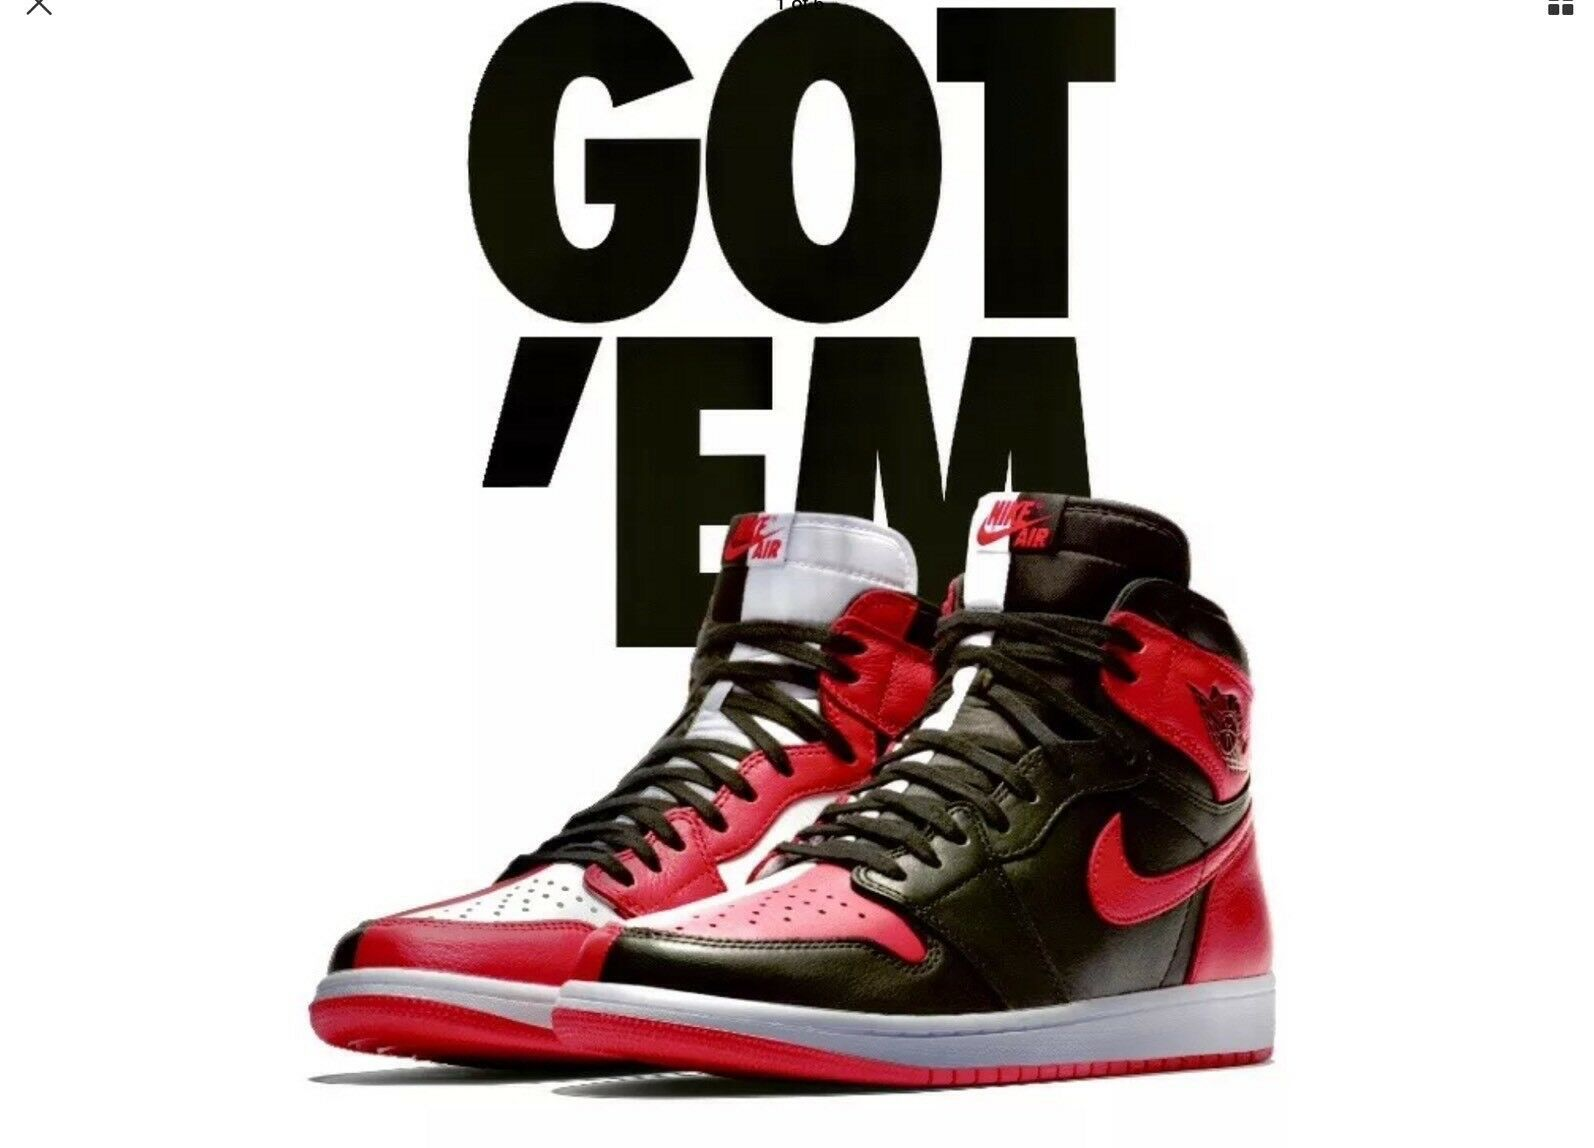 JORDAN RETRO 1 HIGH OG NRG HOMAGE TO HOME SIZE 10.5 NON NUMBERED 861428 061